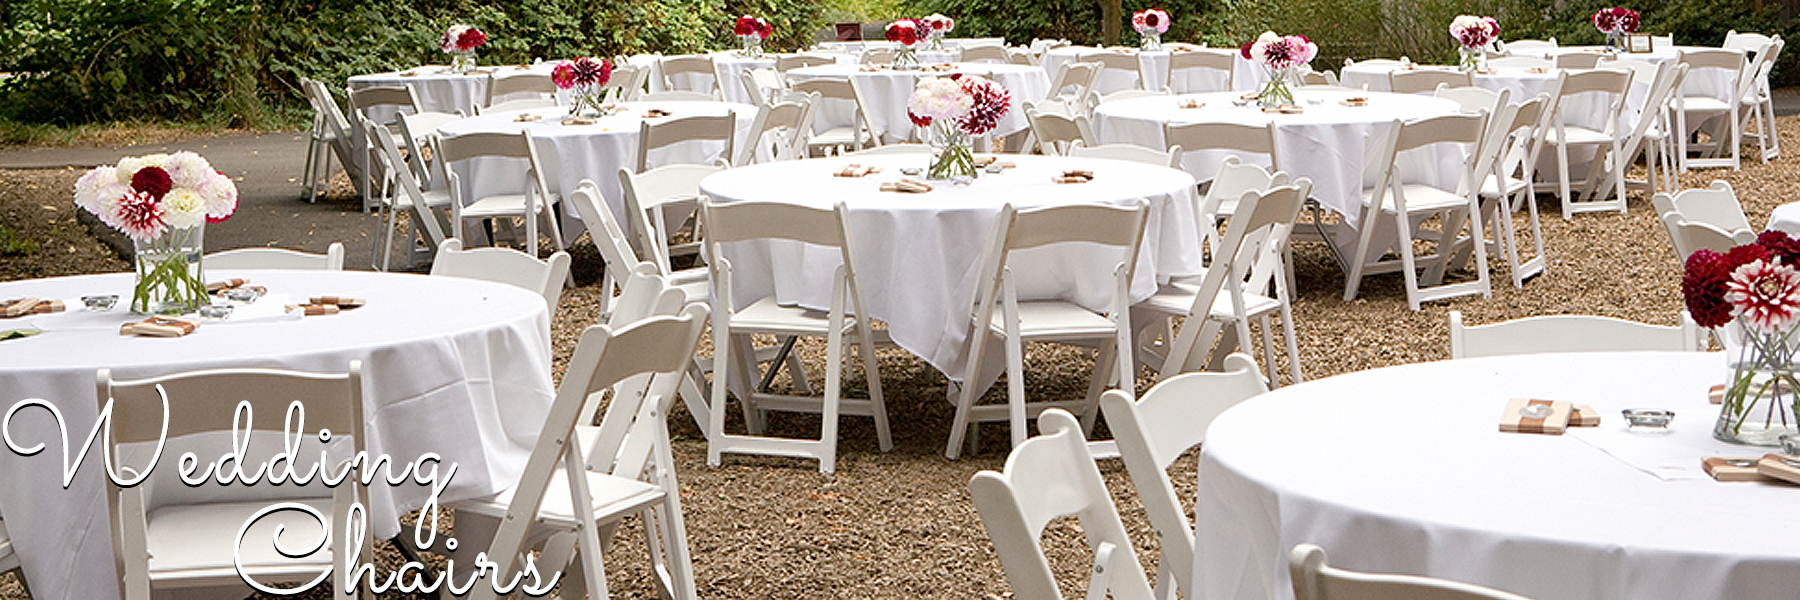 Folding Tables Chairs Chiavari